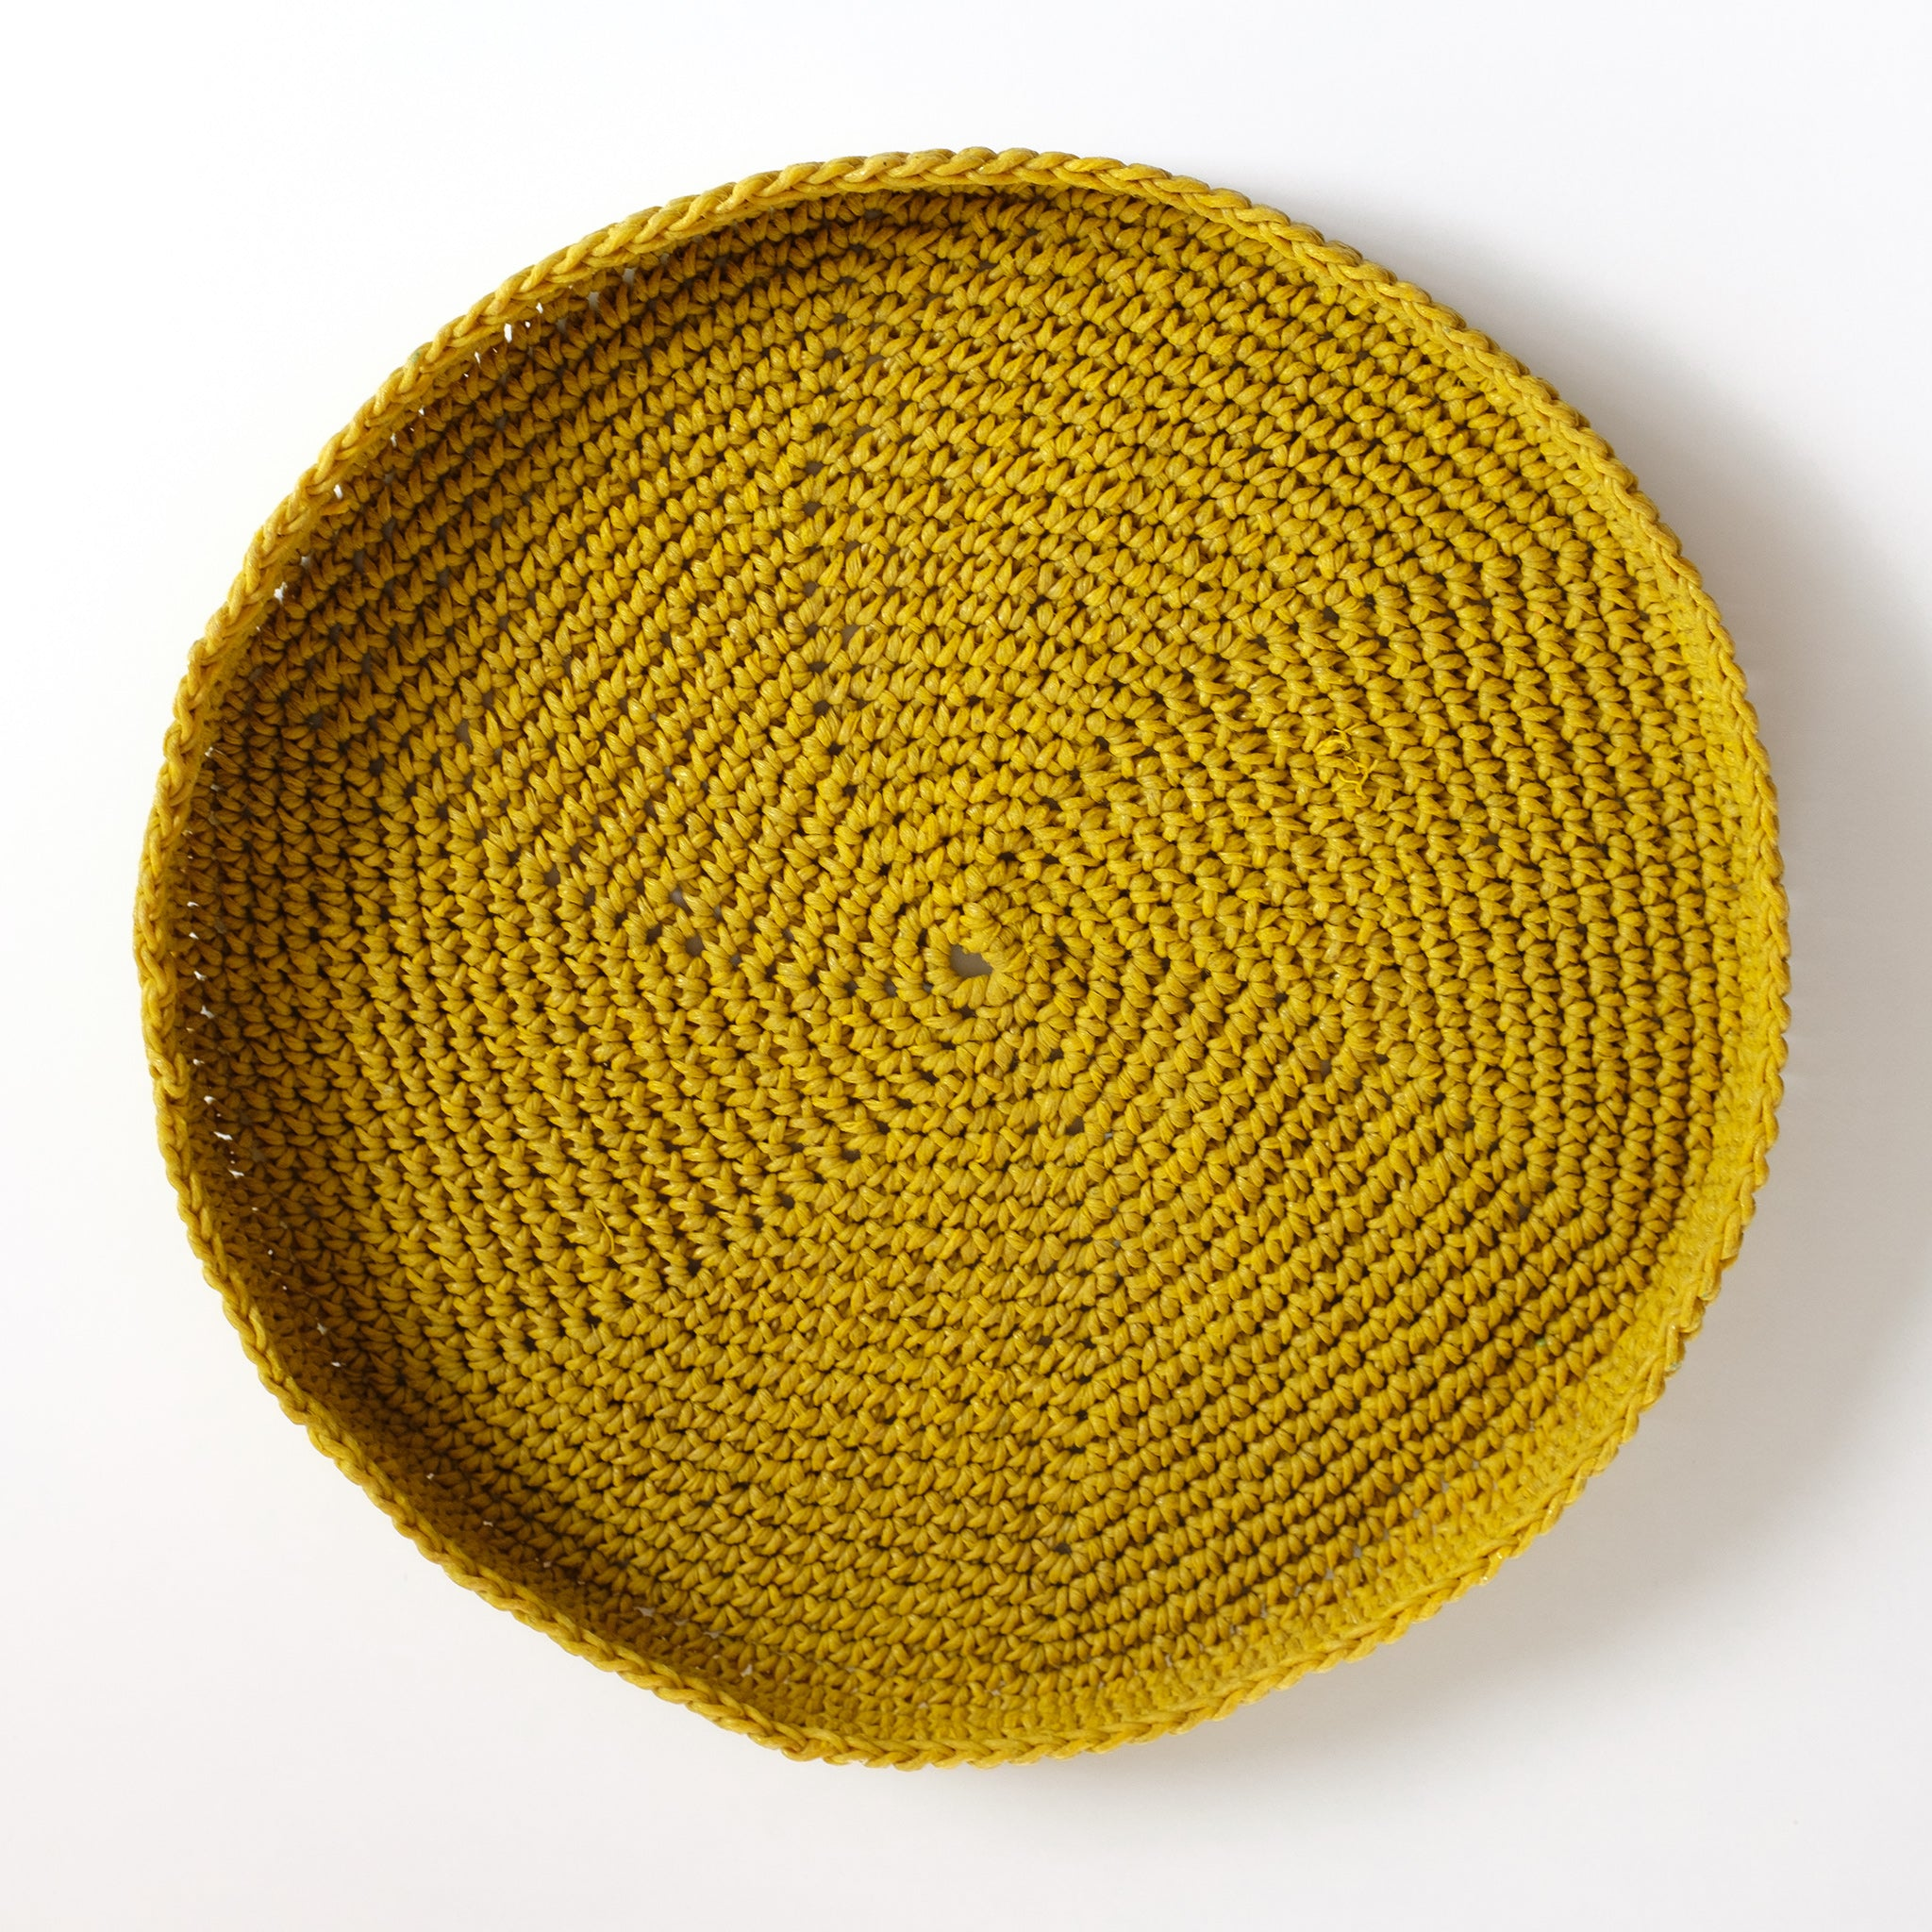 Crochet Hemp Seed Stitch Tray